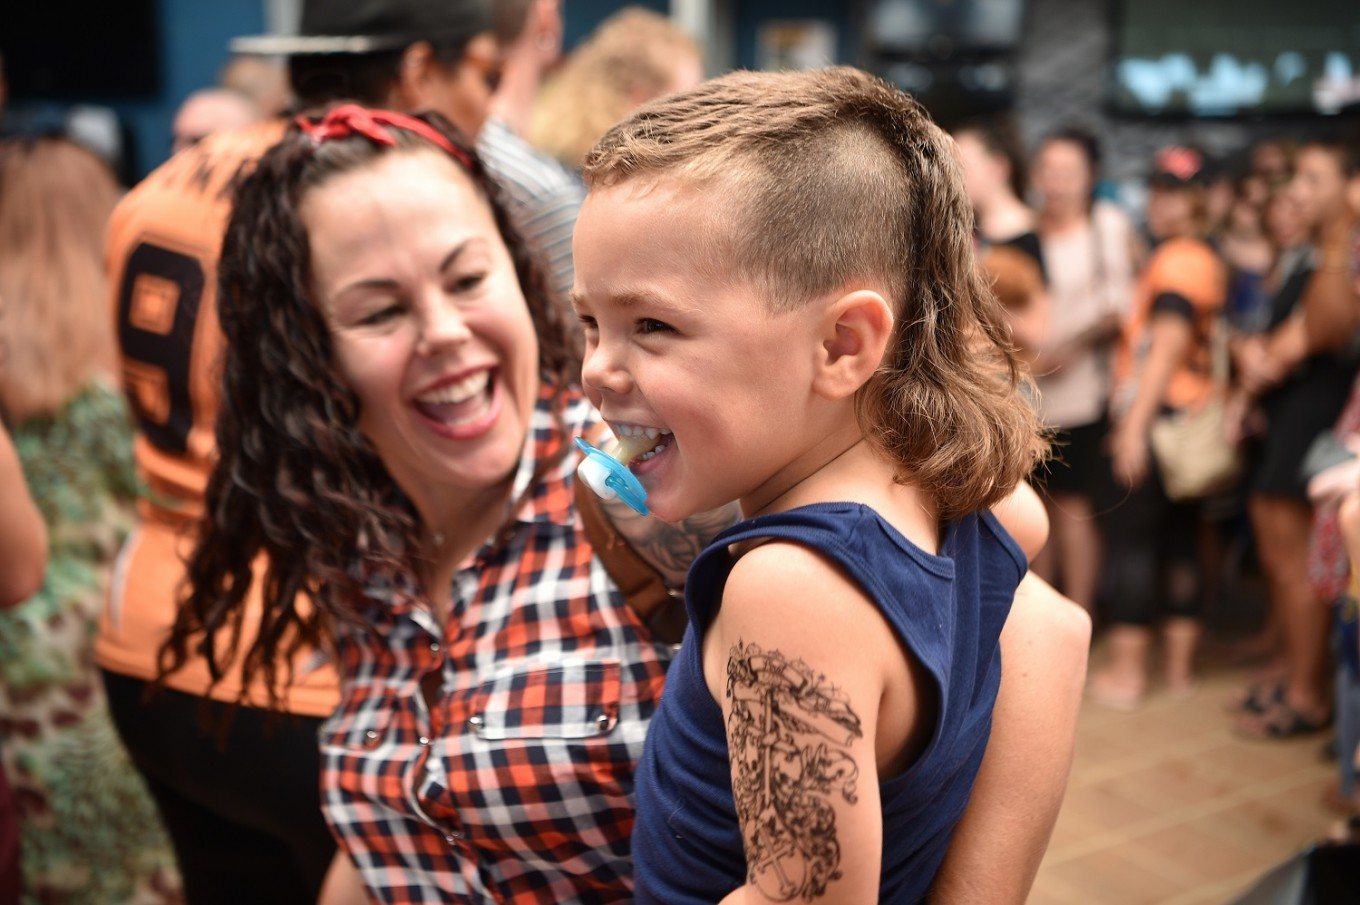 A child sports a mullet haircut at Mulletfest 2018 in the town of Kurri Kurri, 150 kms north of Sydney on February 24, 2018.